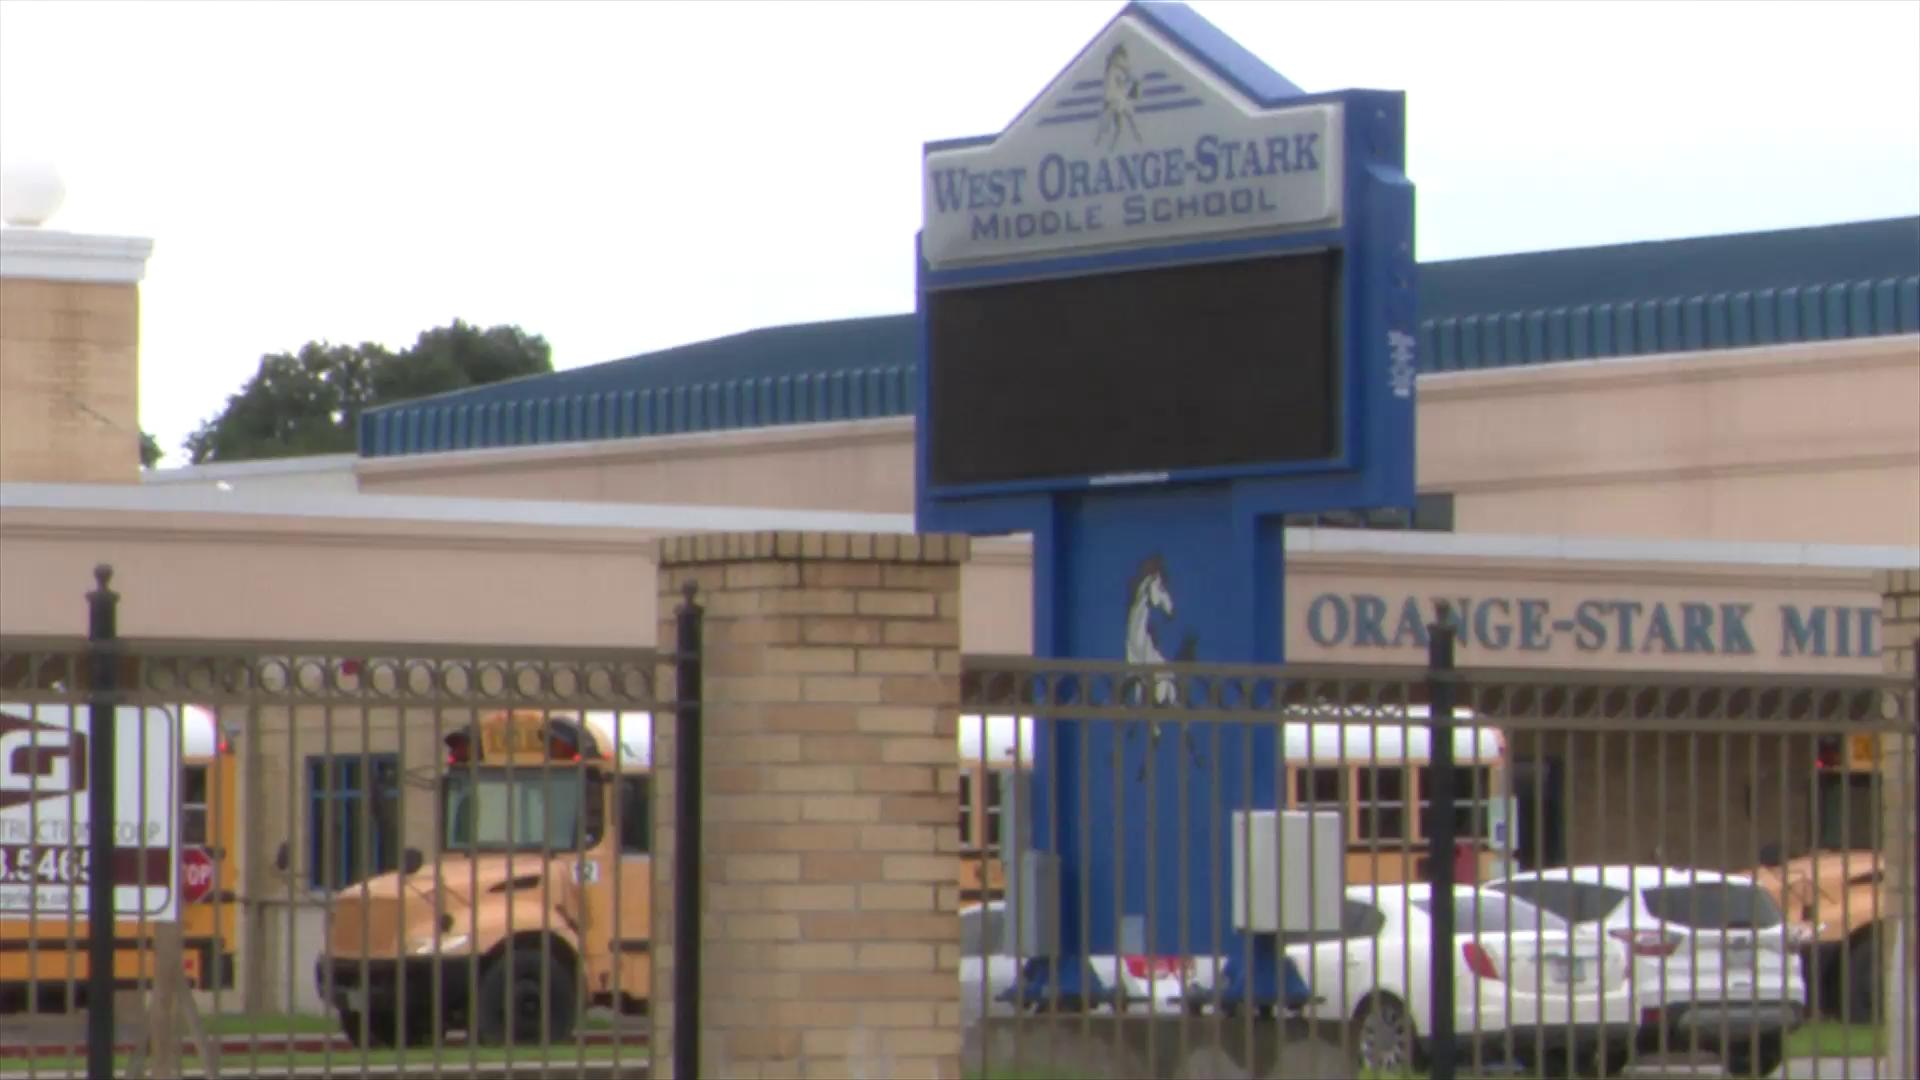 WOCISD Allocated Federal Grant to Rebuild West Orange-Stark Middle School